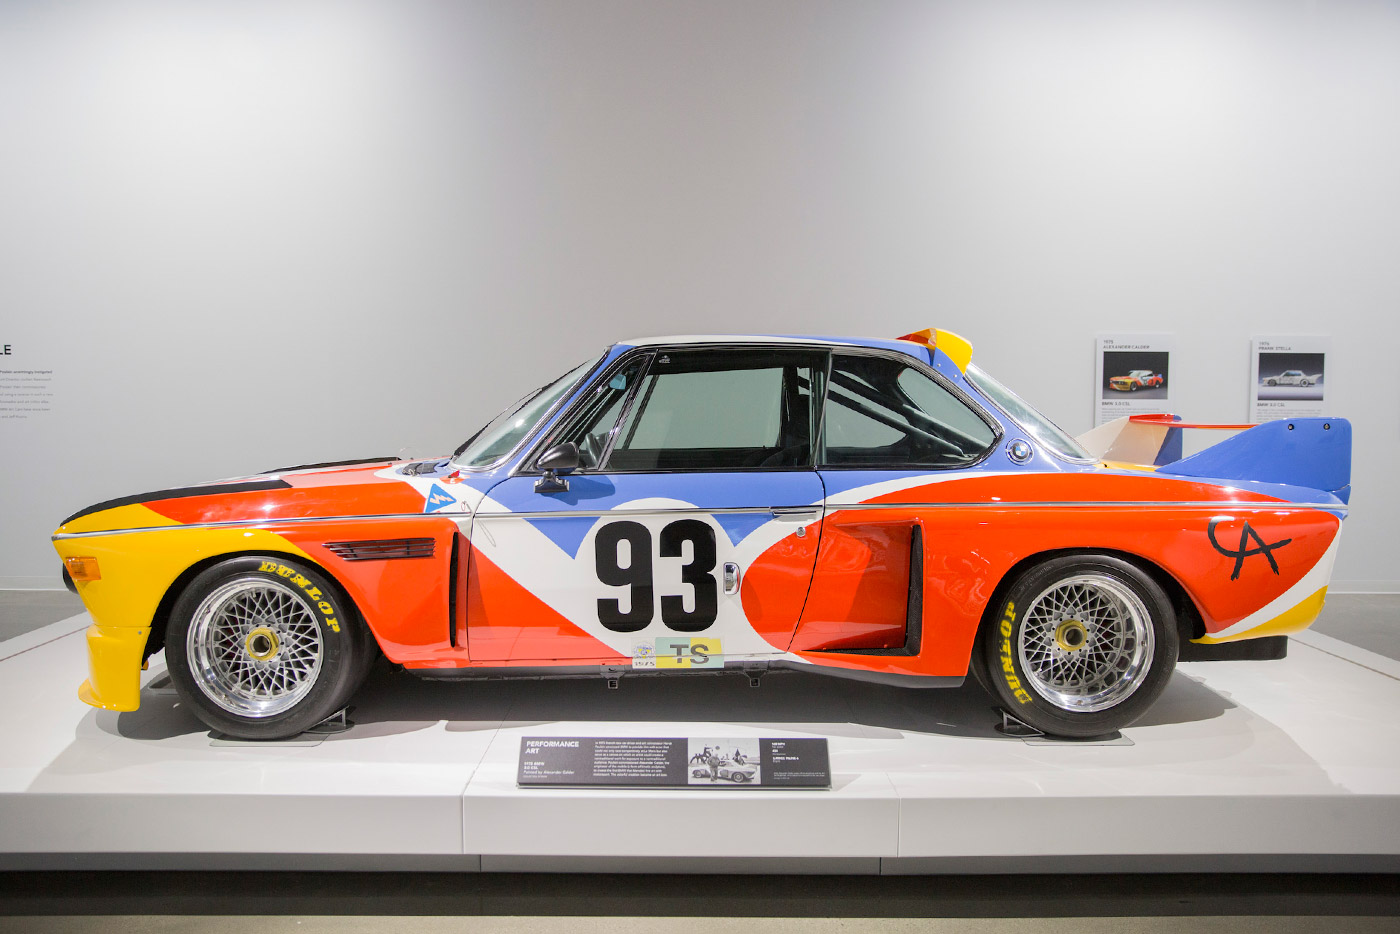 The museum houses several BMW Art Cars, including a 1975 BMW 3.0 CSL swathed in Alexander Calder's brilliant primary colors (pictured) and a 1995 BMW 850 CSi as reimagined by David Hockney